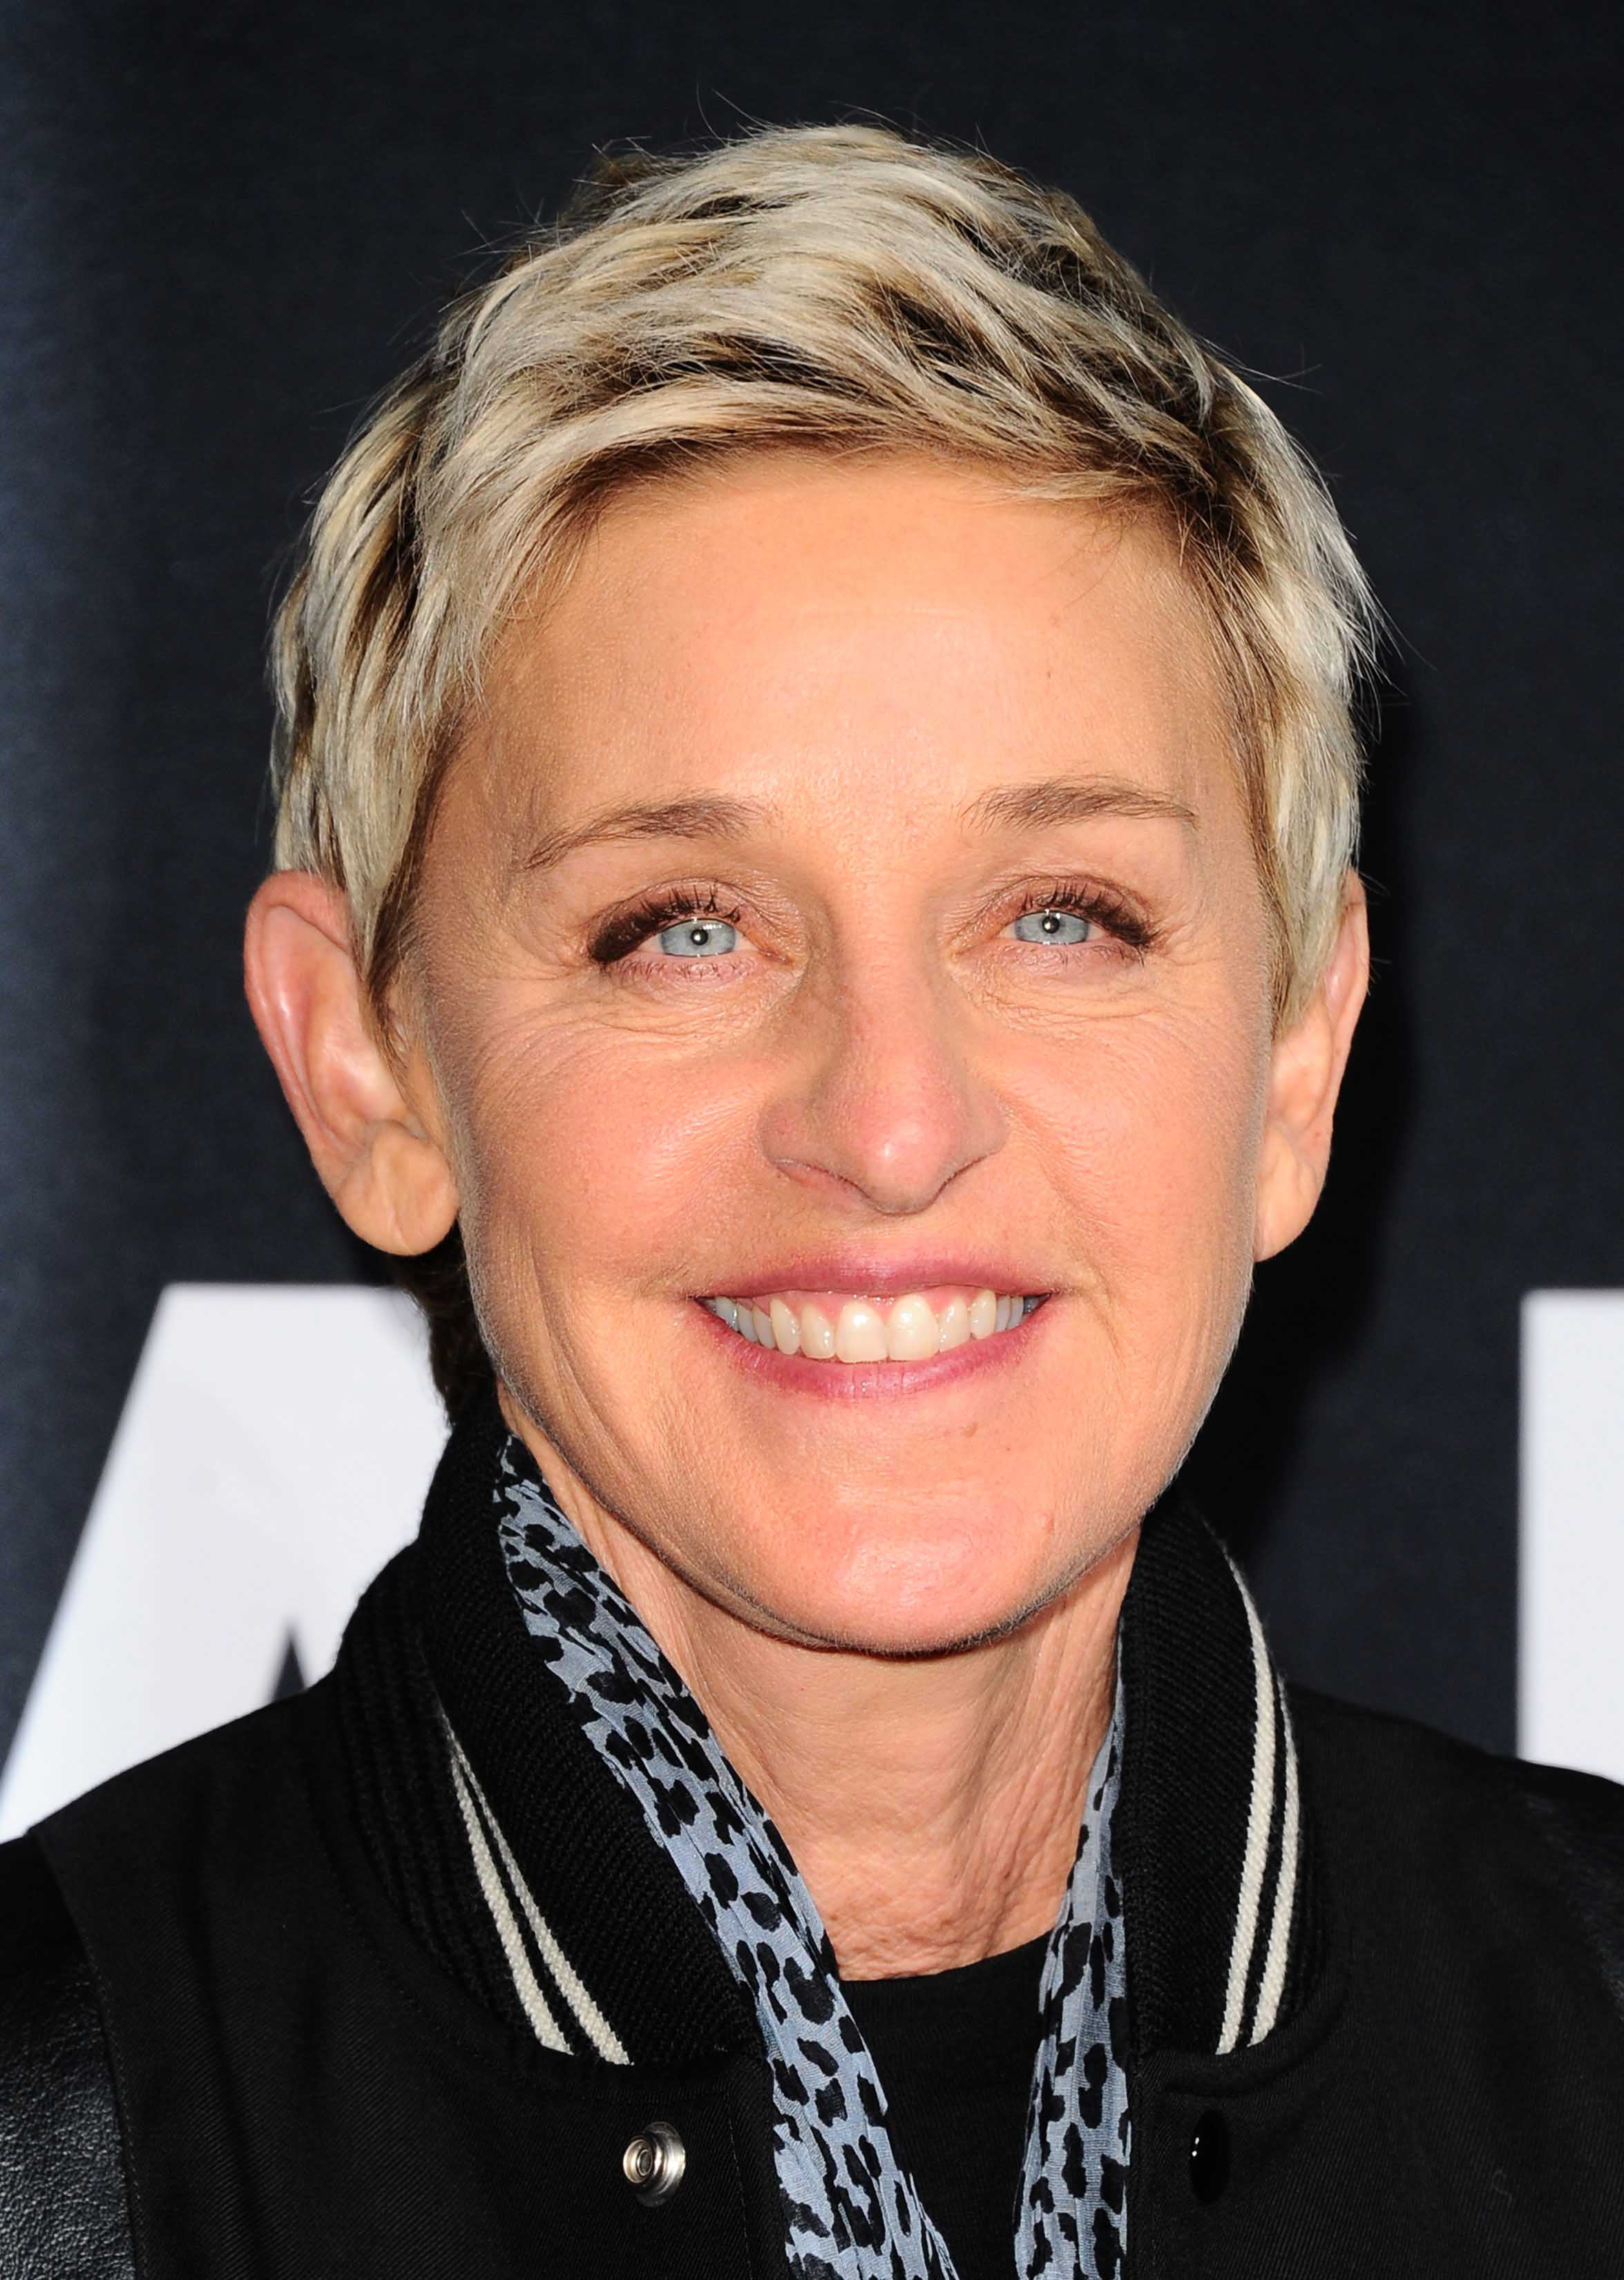 Blonde pixie crop with dark roots hairstyles Ellen DeGeneres. Credit Rex by Shutterstock